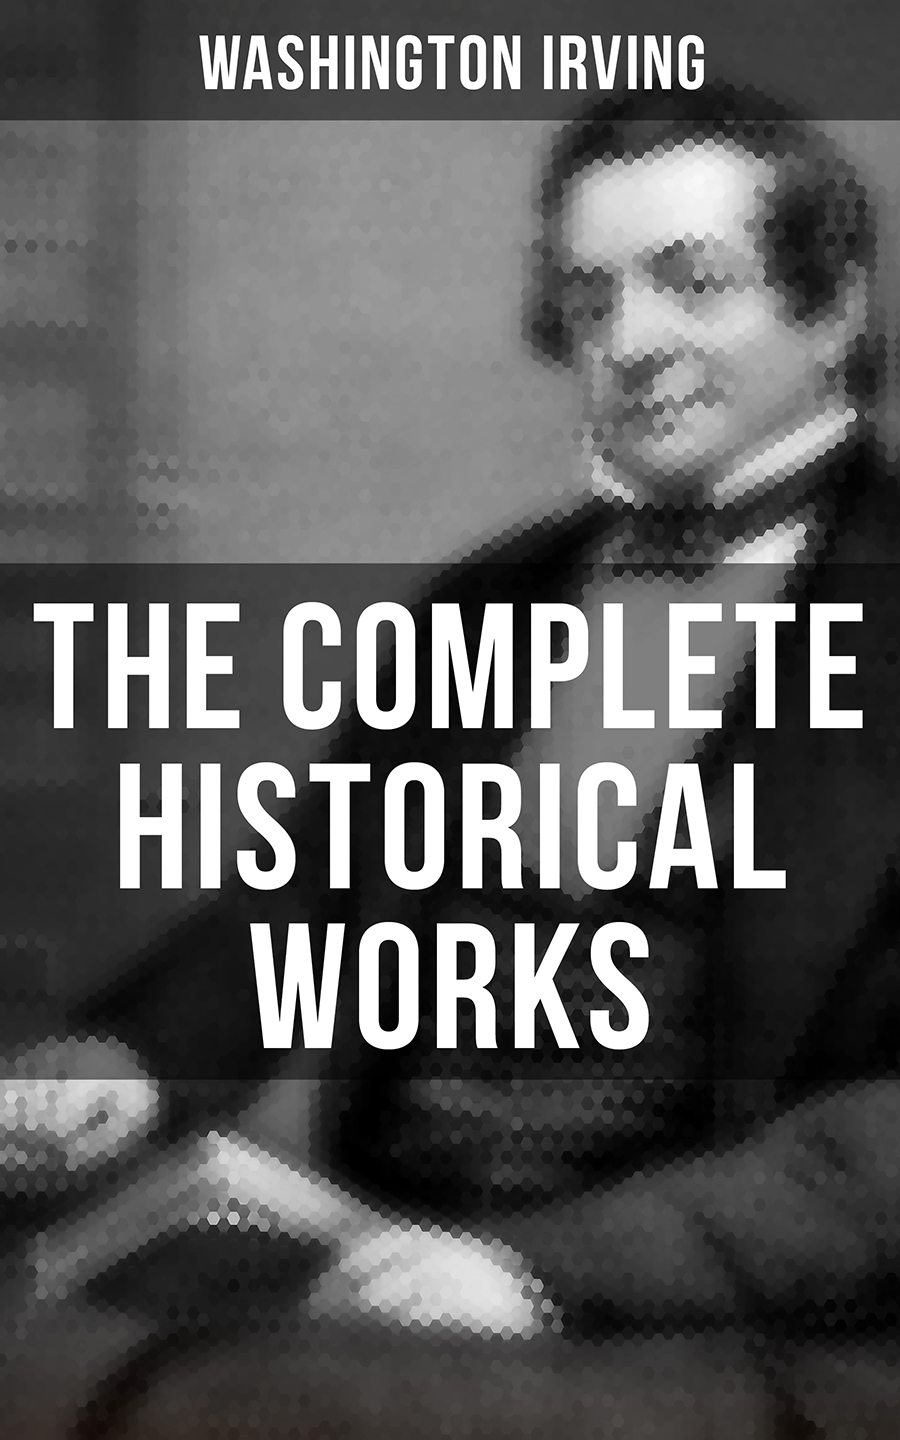 the complete historical works of washington irving